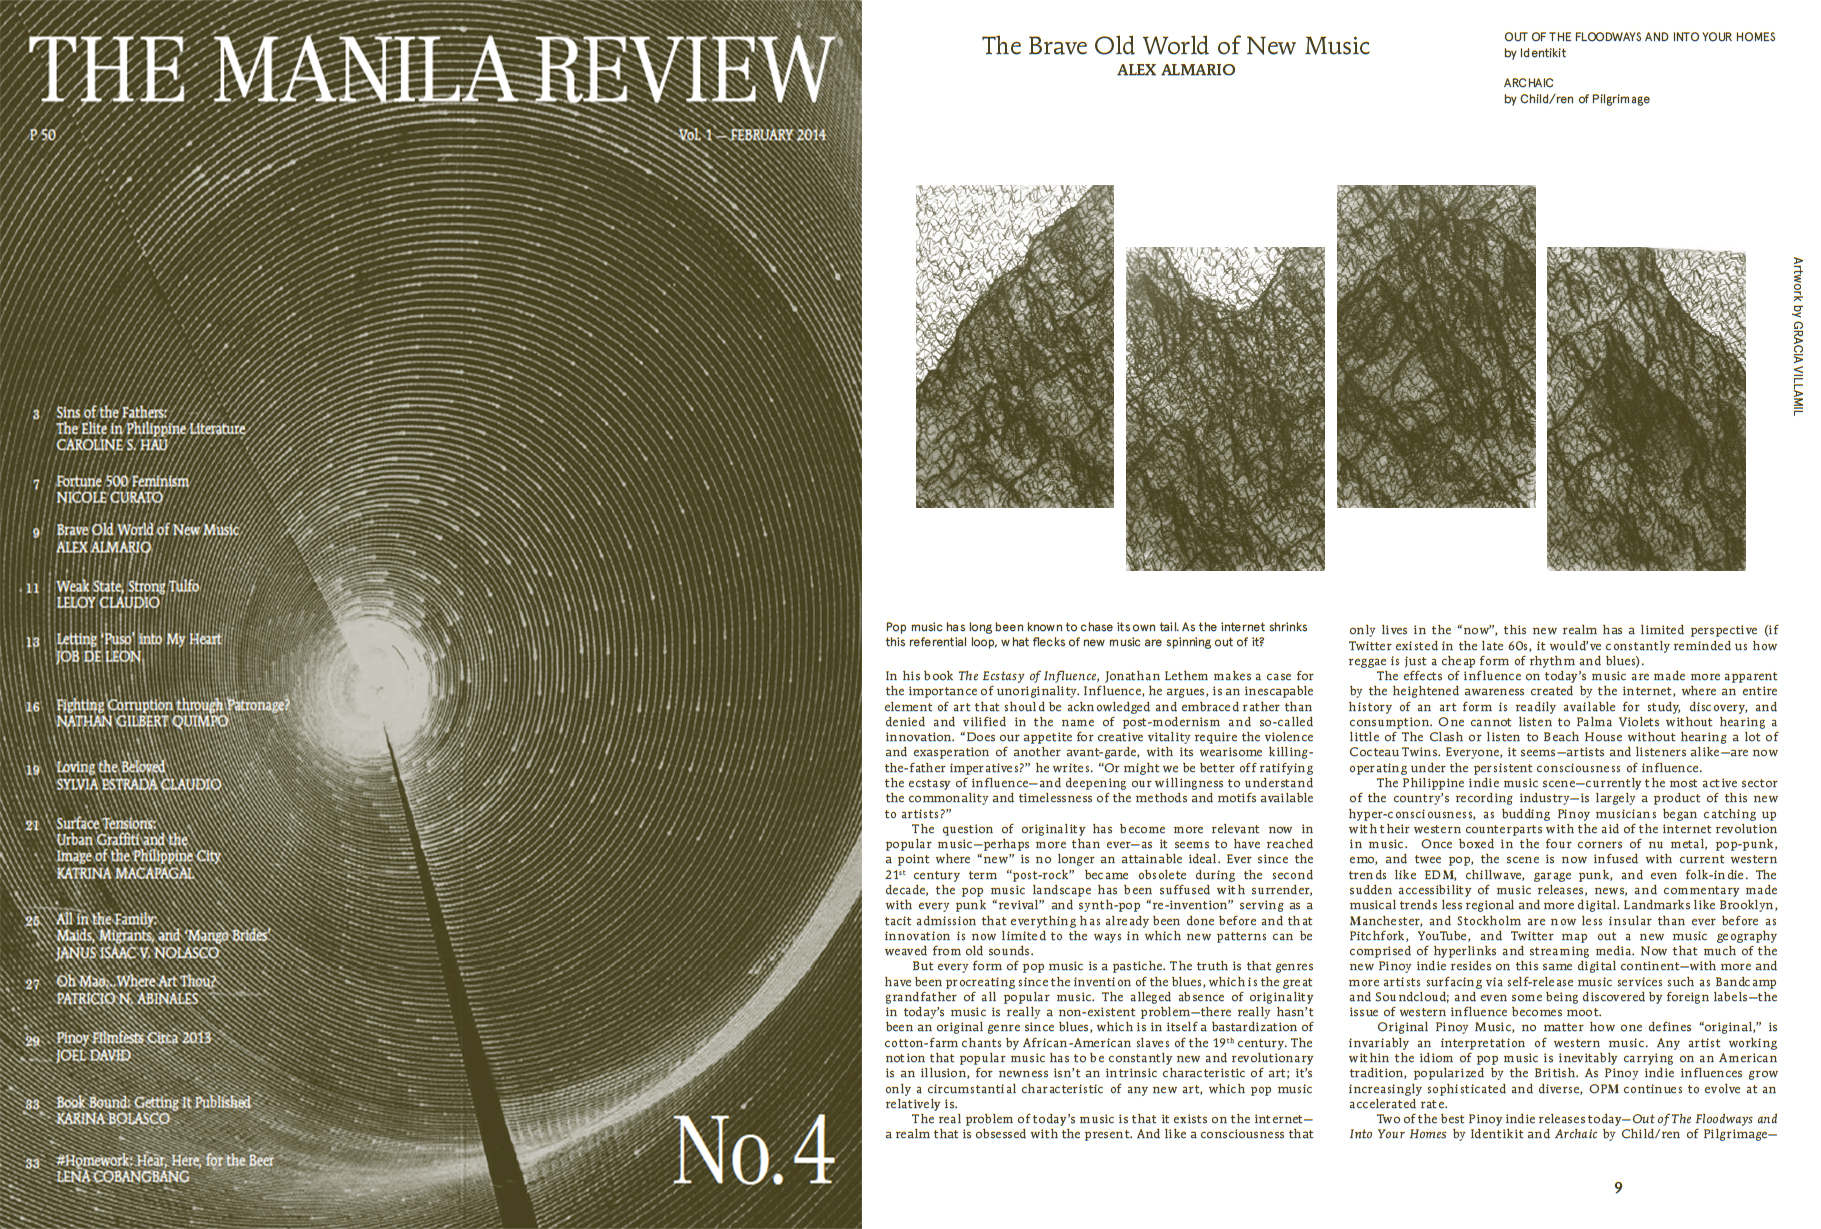 Manila Review  Feb 2014 A portion from my LAAND drawings are included on Pg. 9